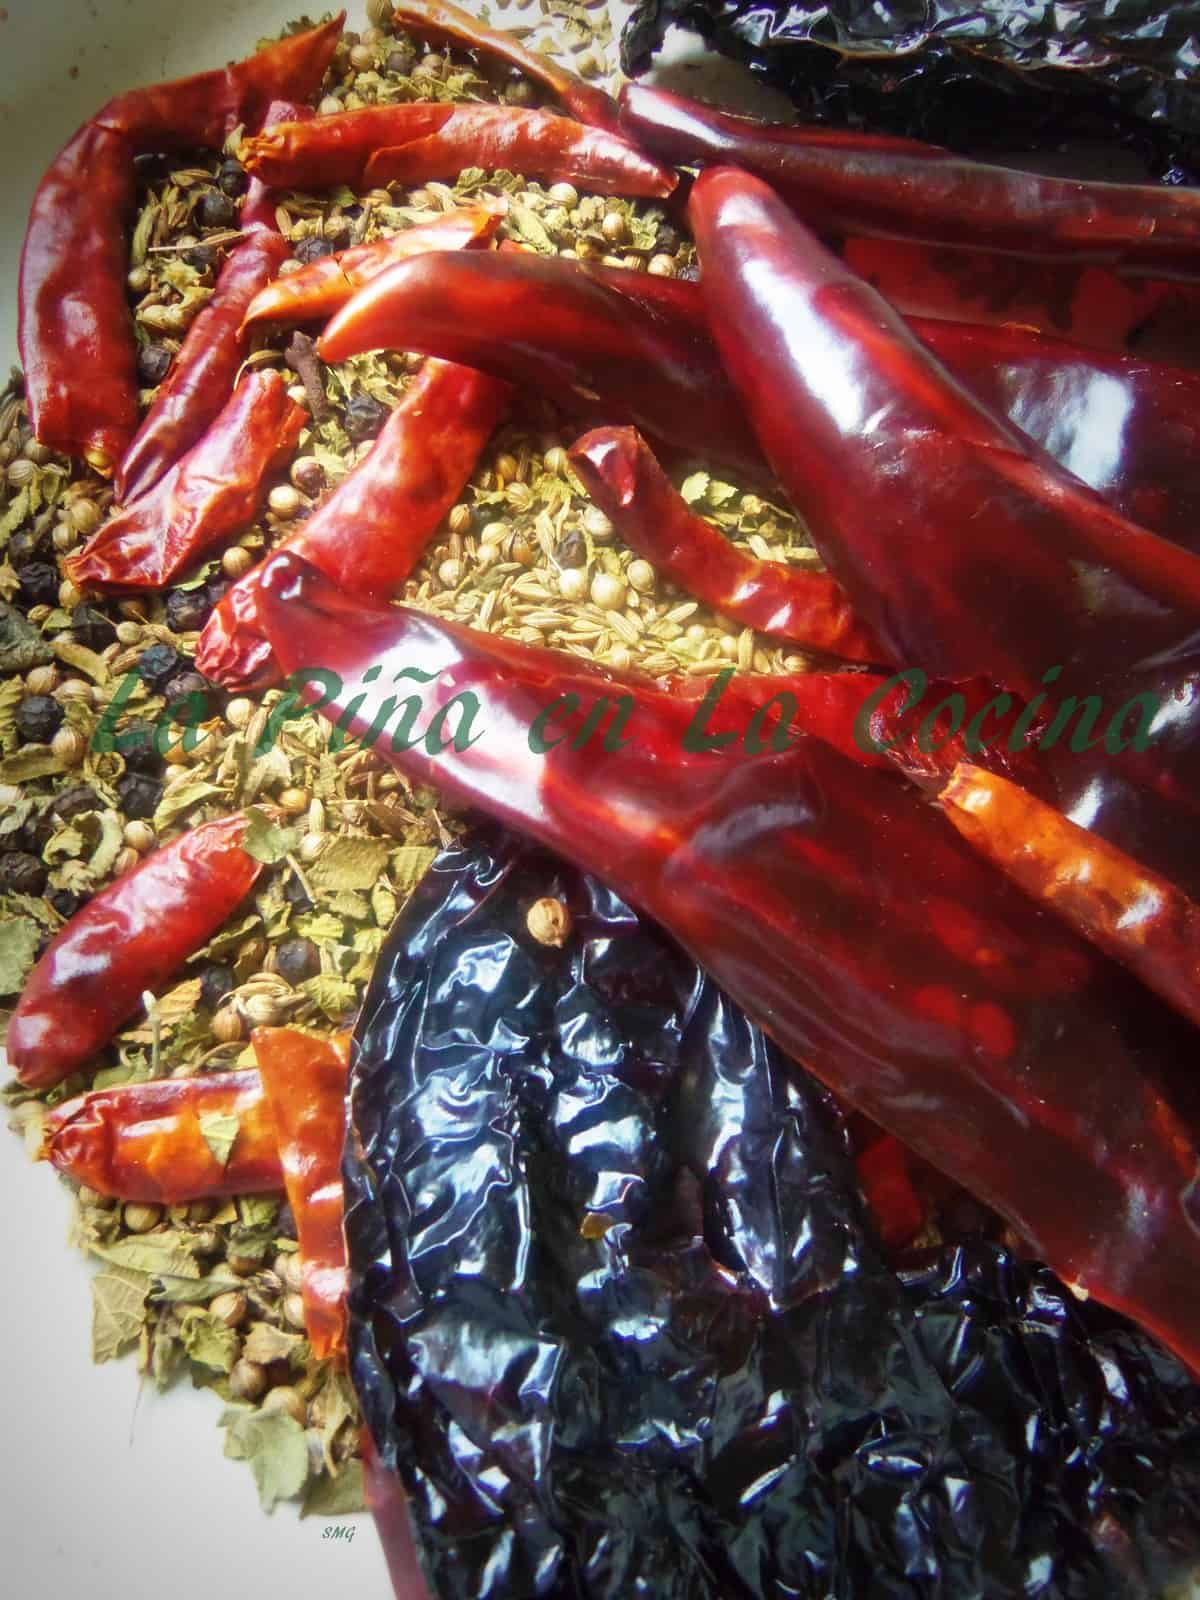 Tpasted chiles and spices cooling before being ground up for chorizo